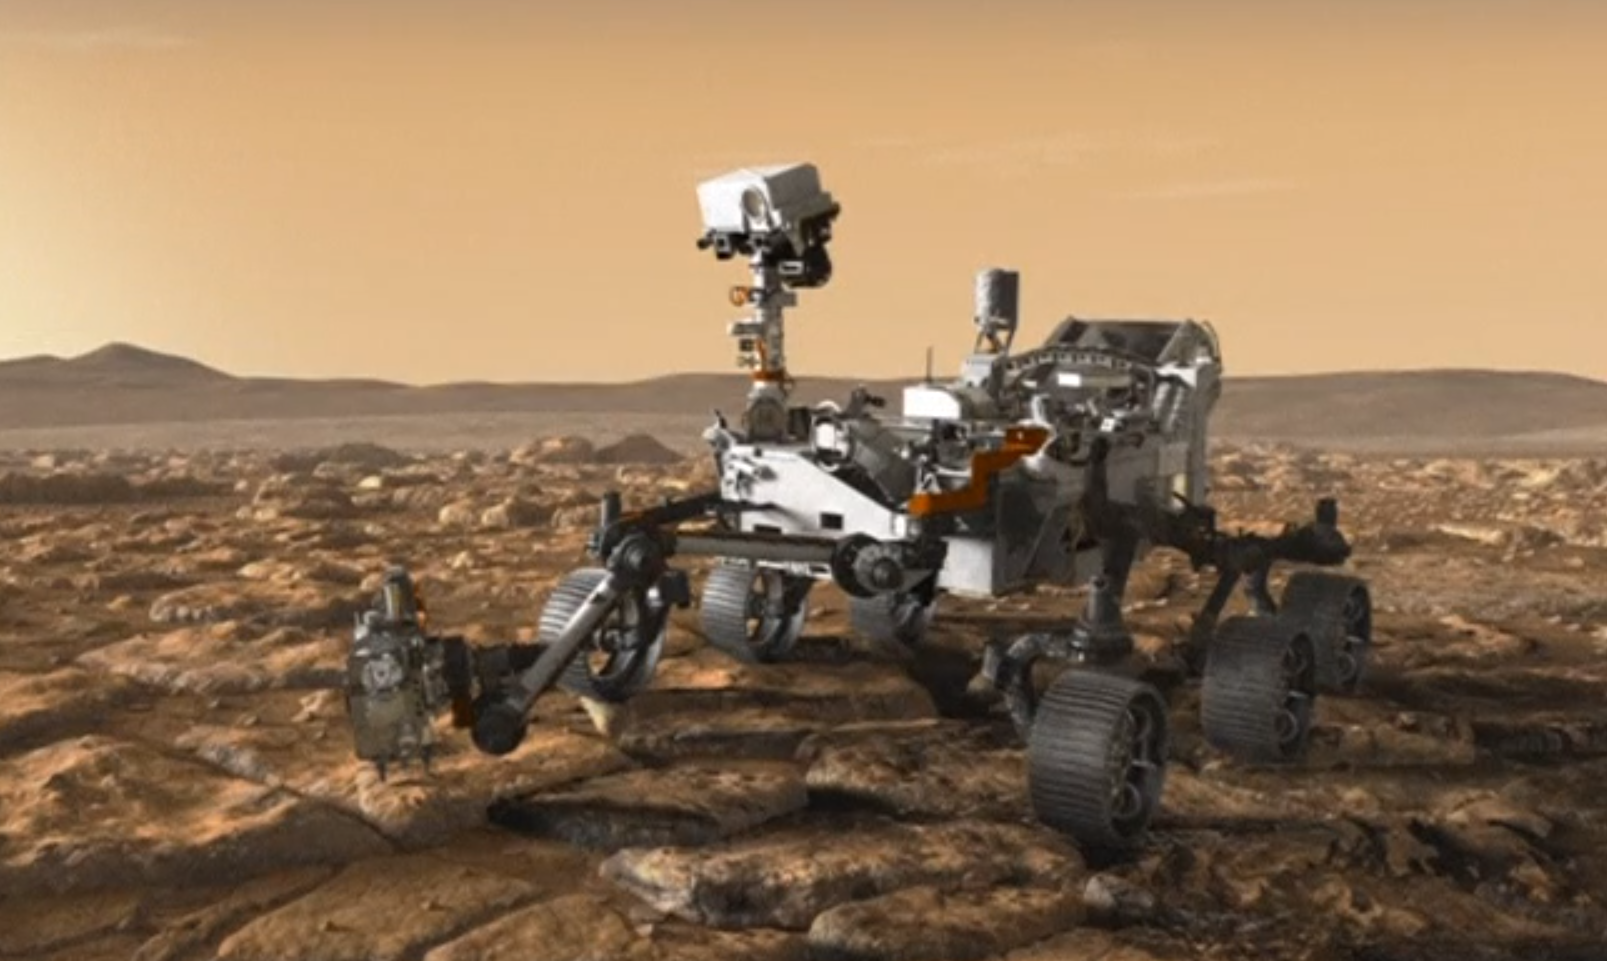 nasa mars exploration rover mission - photo #12